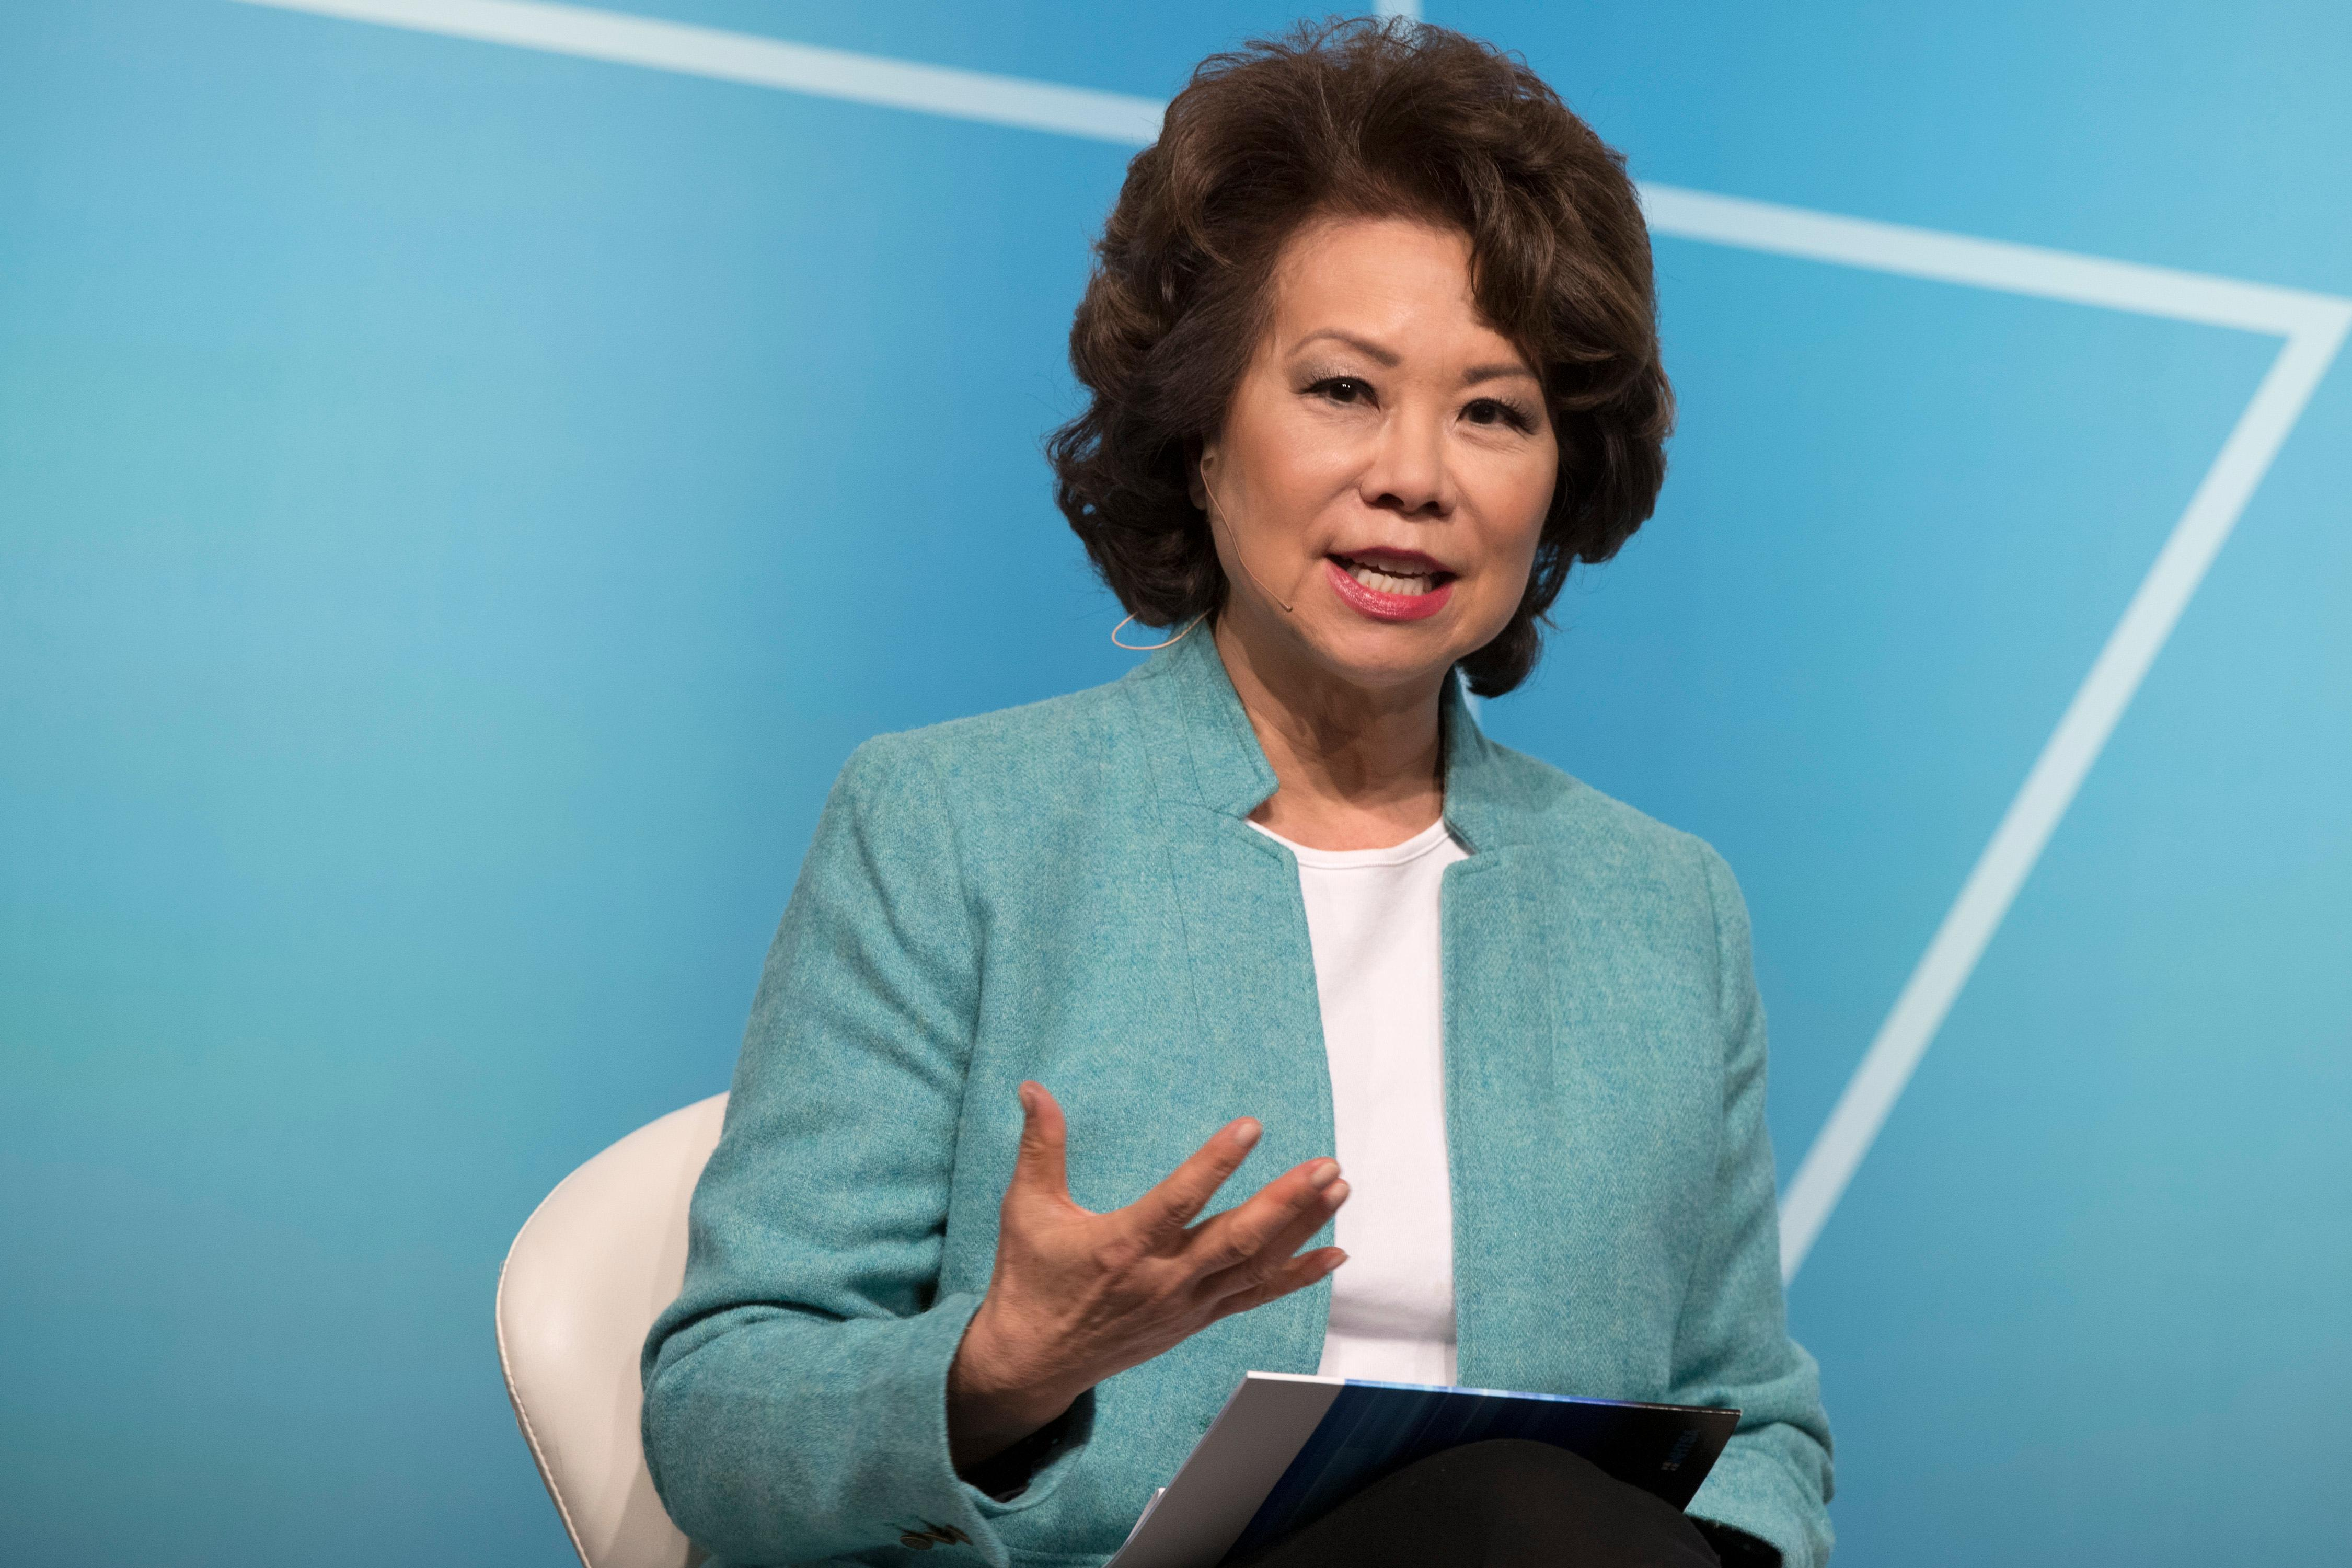 U.S. Secretary of Transportation Elaine Chao speaks during the second day of CES Wednesday, January 10, 2018, at the Westgate. CREDIT: Sam Morris/Las Vegas News Bureau